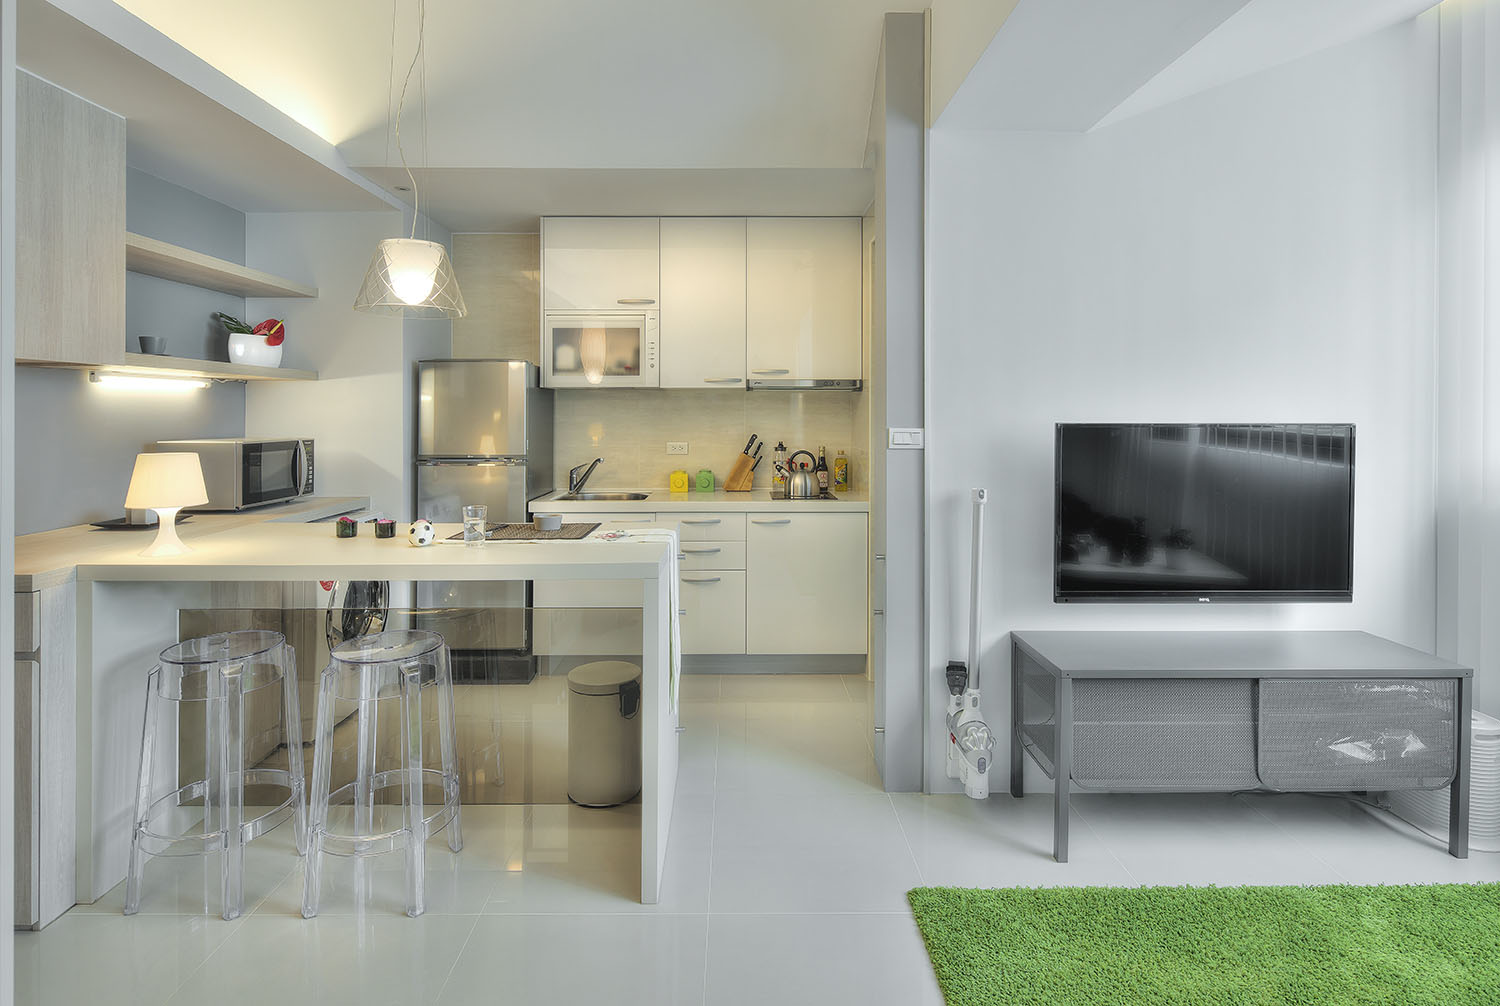 Studio Apartment Kitchen Island Small Taipei Studio Apartment With Clever Efficient Design